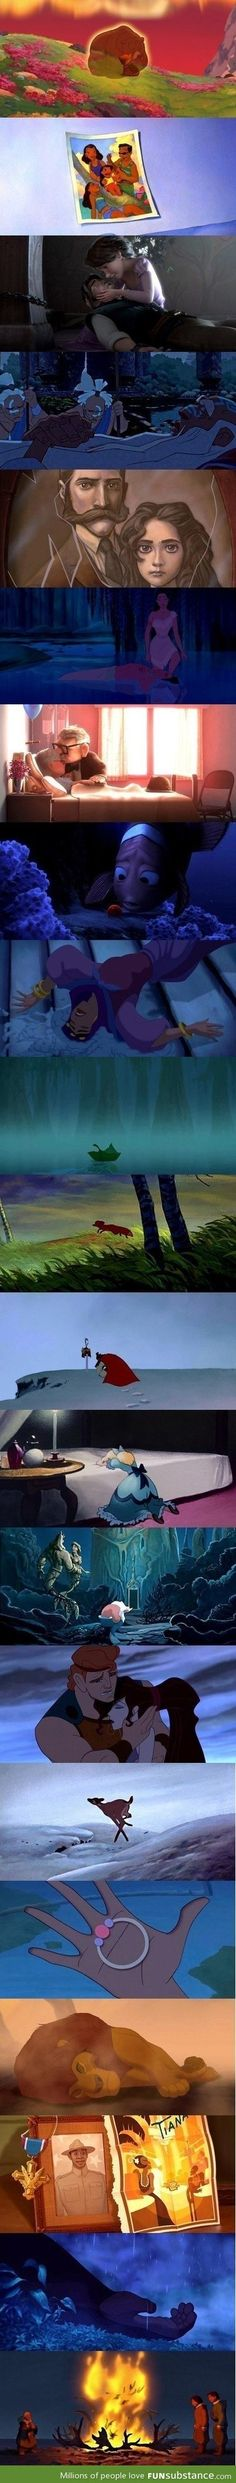 Sad moments in Disney movies - I just couldn't choose one.